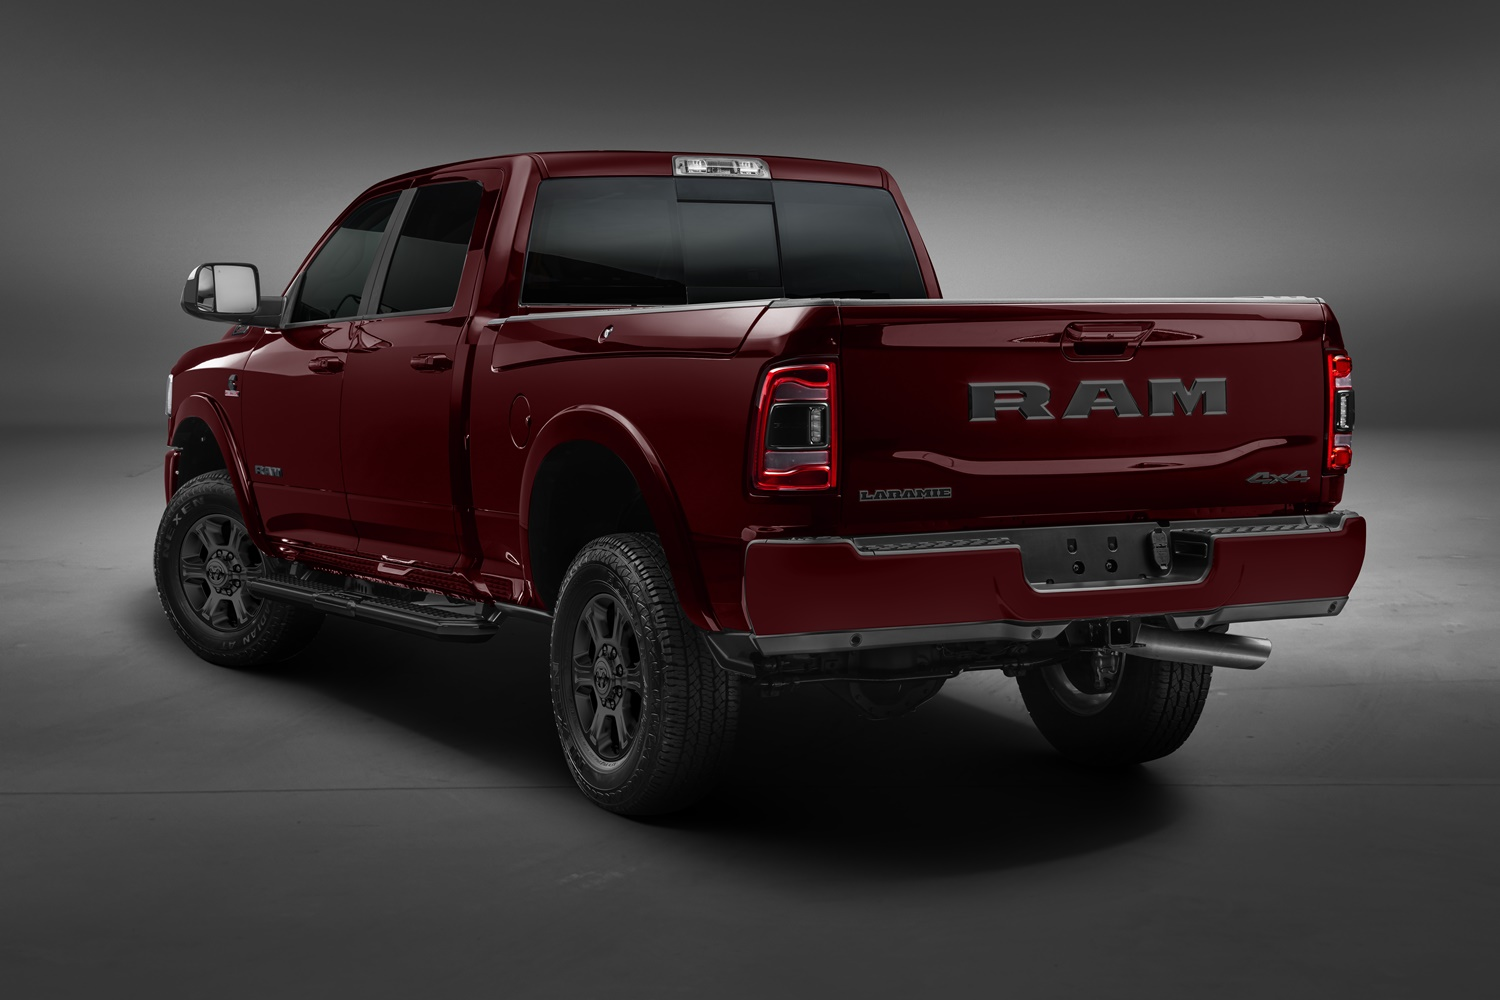 Ram 2500 Night Edition de traseira com estribo preto